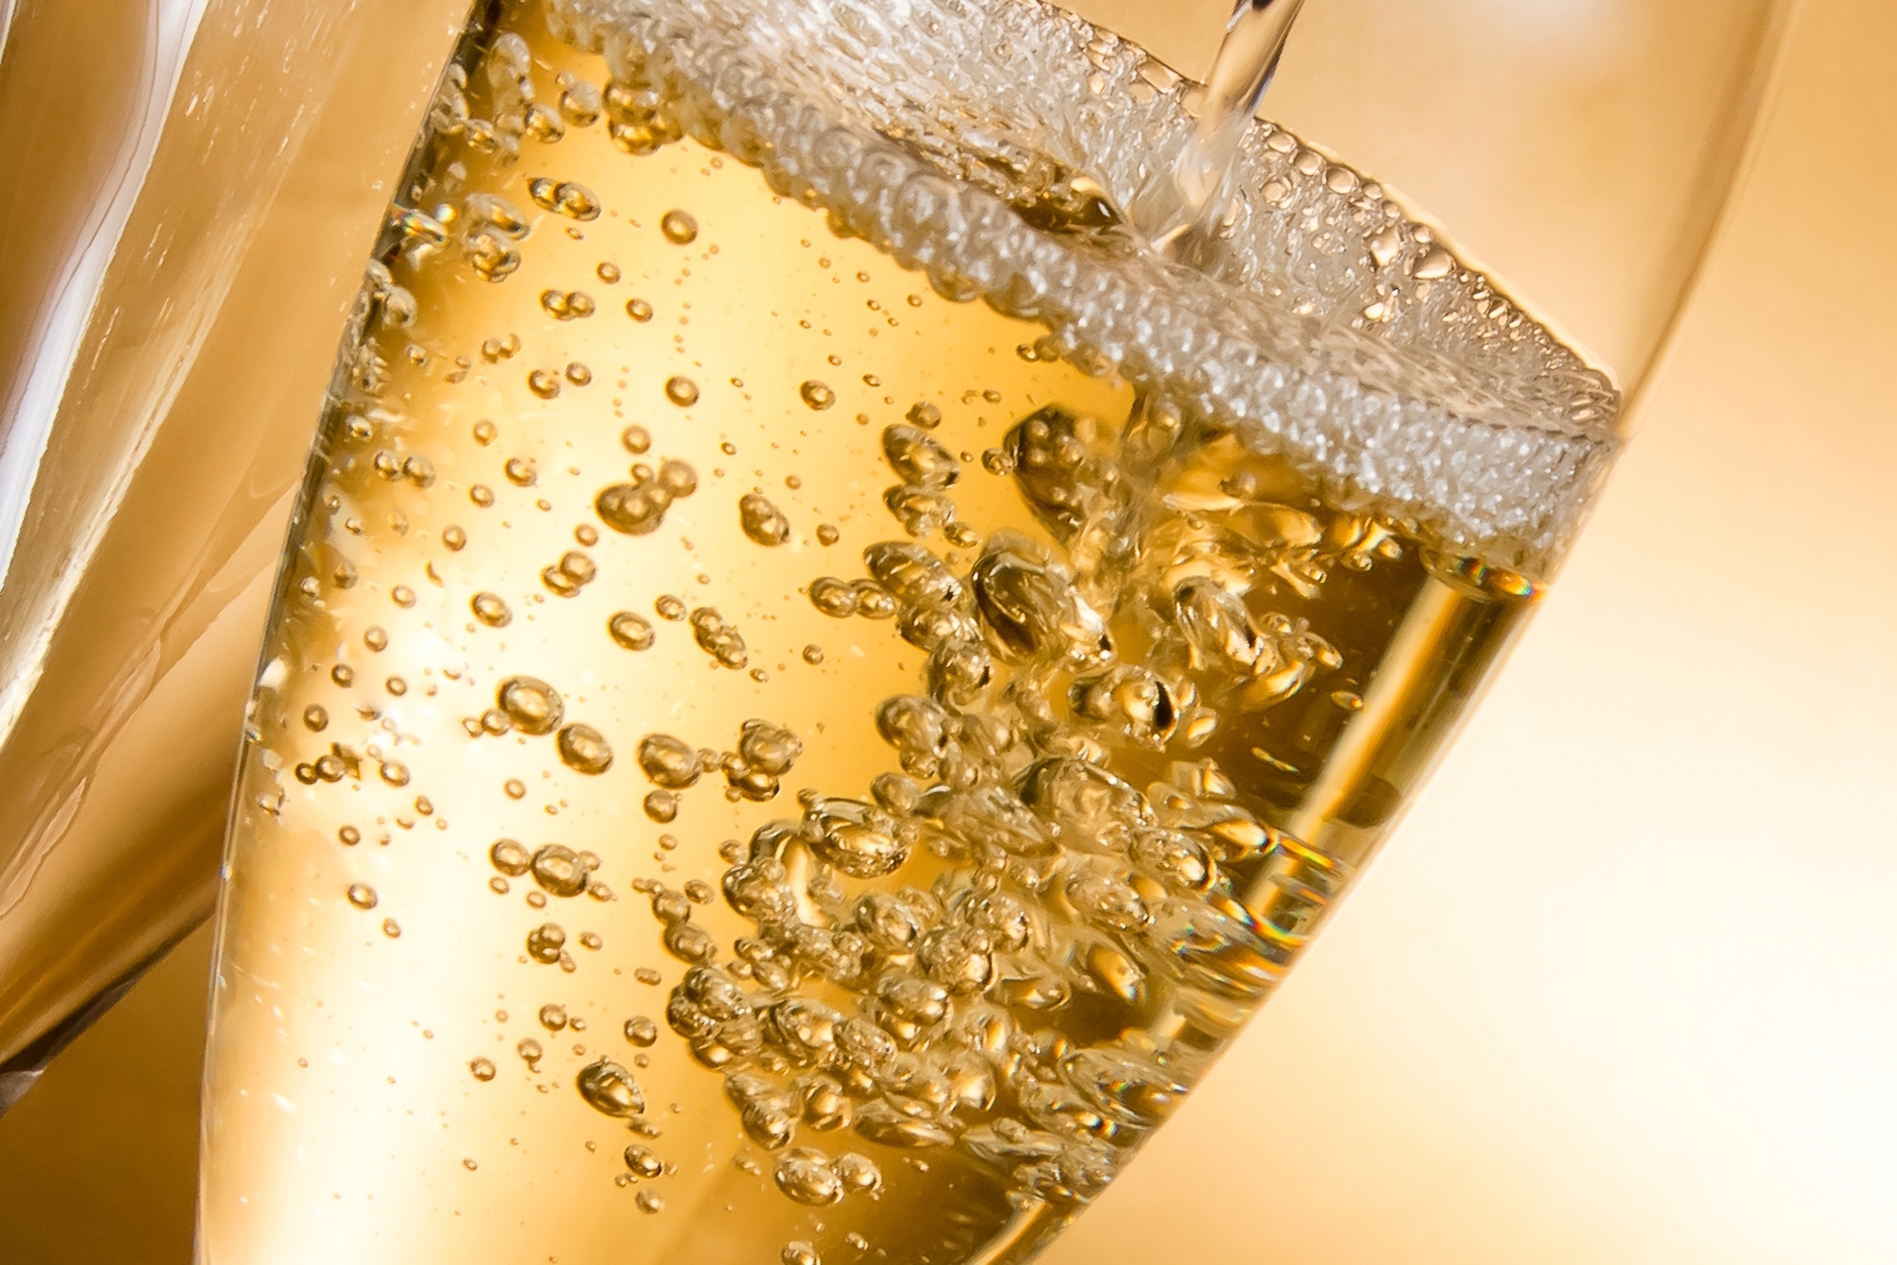 Researchers set out to see if the acoustics of champagne bubbles might play a key role in determining how expensive the bottle should be.